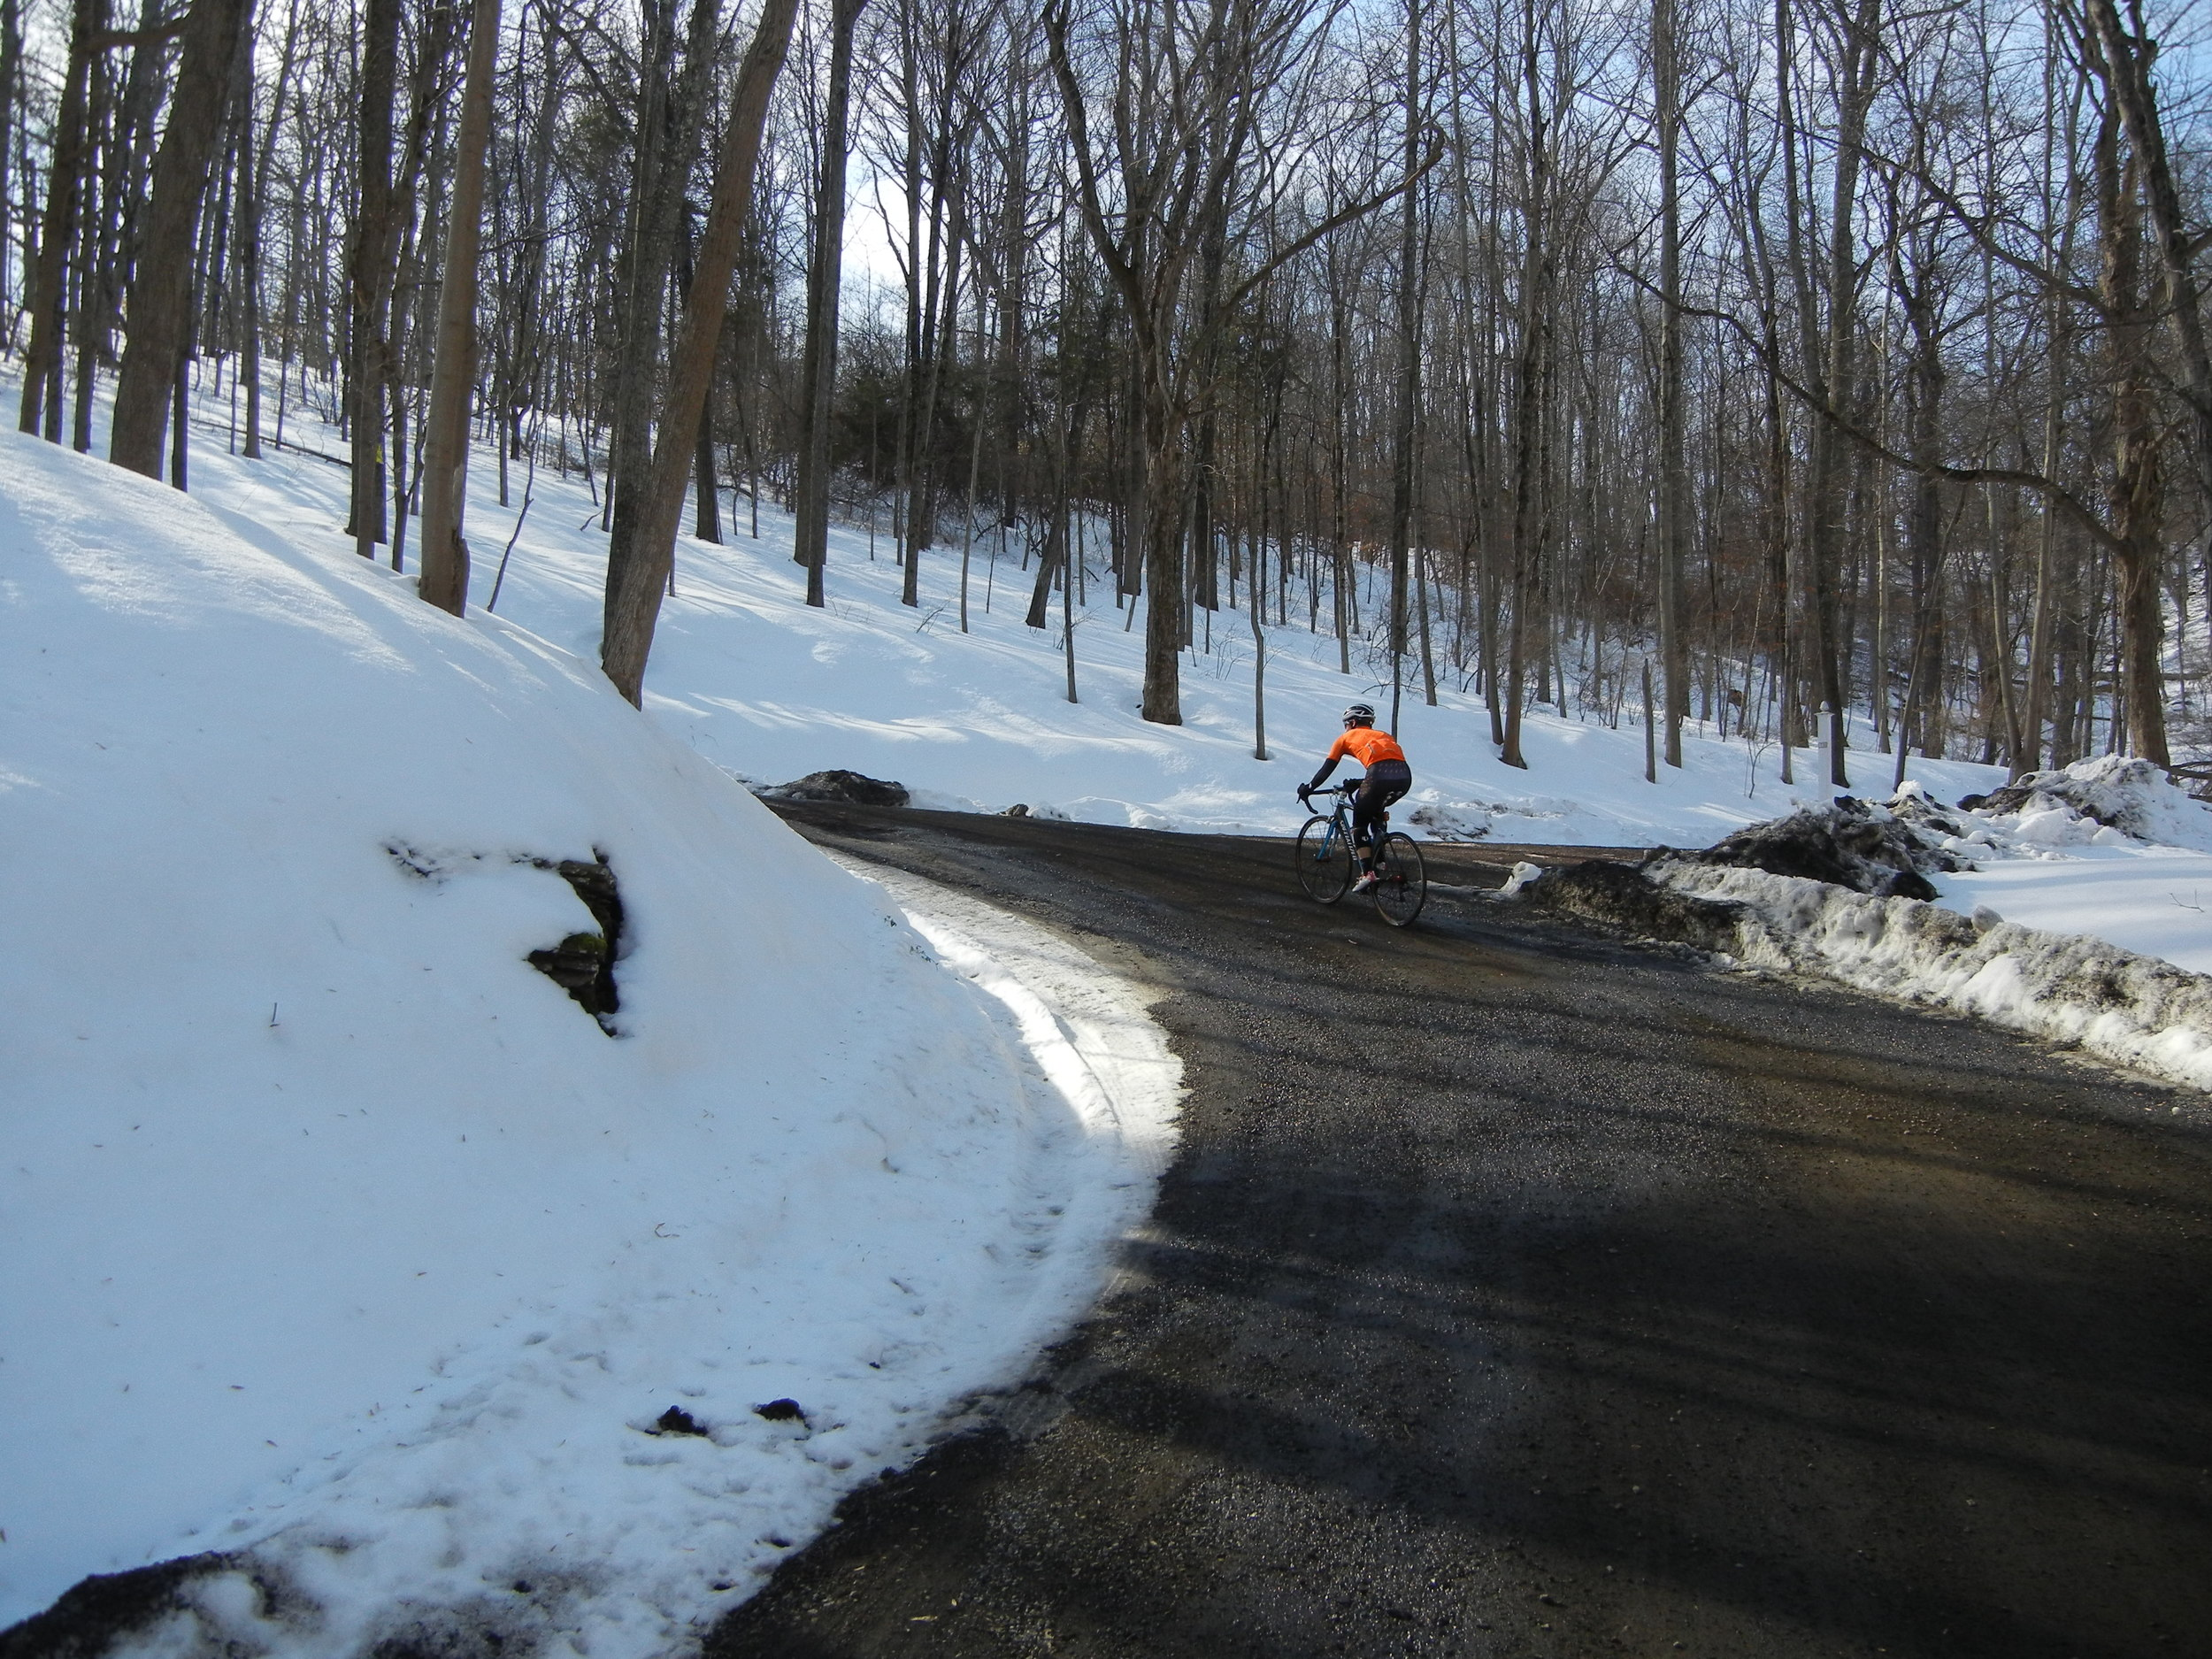 It's quite difficult to capture the steepness of this climb whilst riding. It's even more difficult to tackle a steep gravel climb with a car coming down just behind the snow bank.